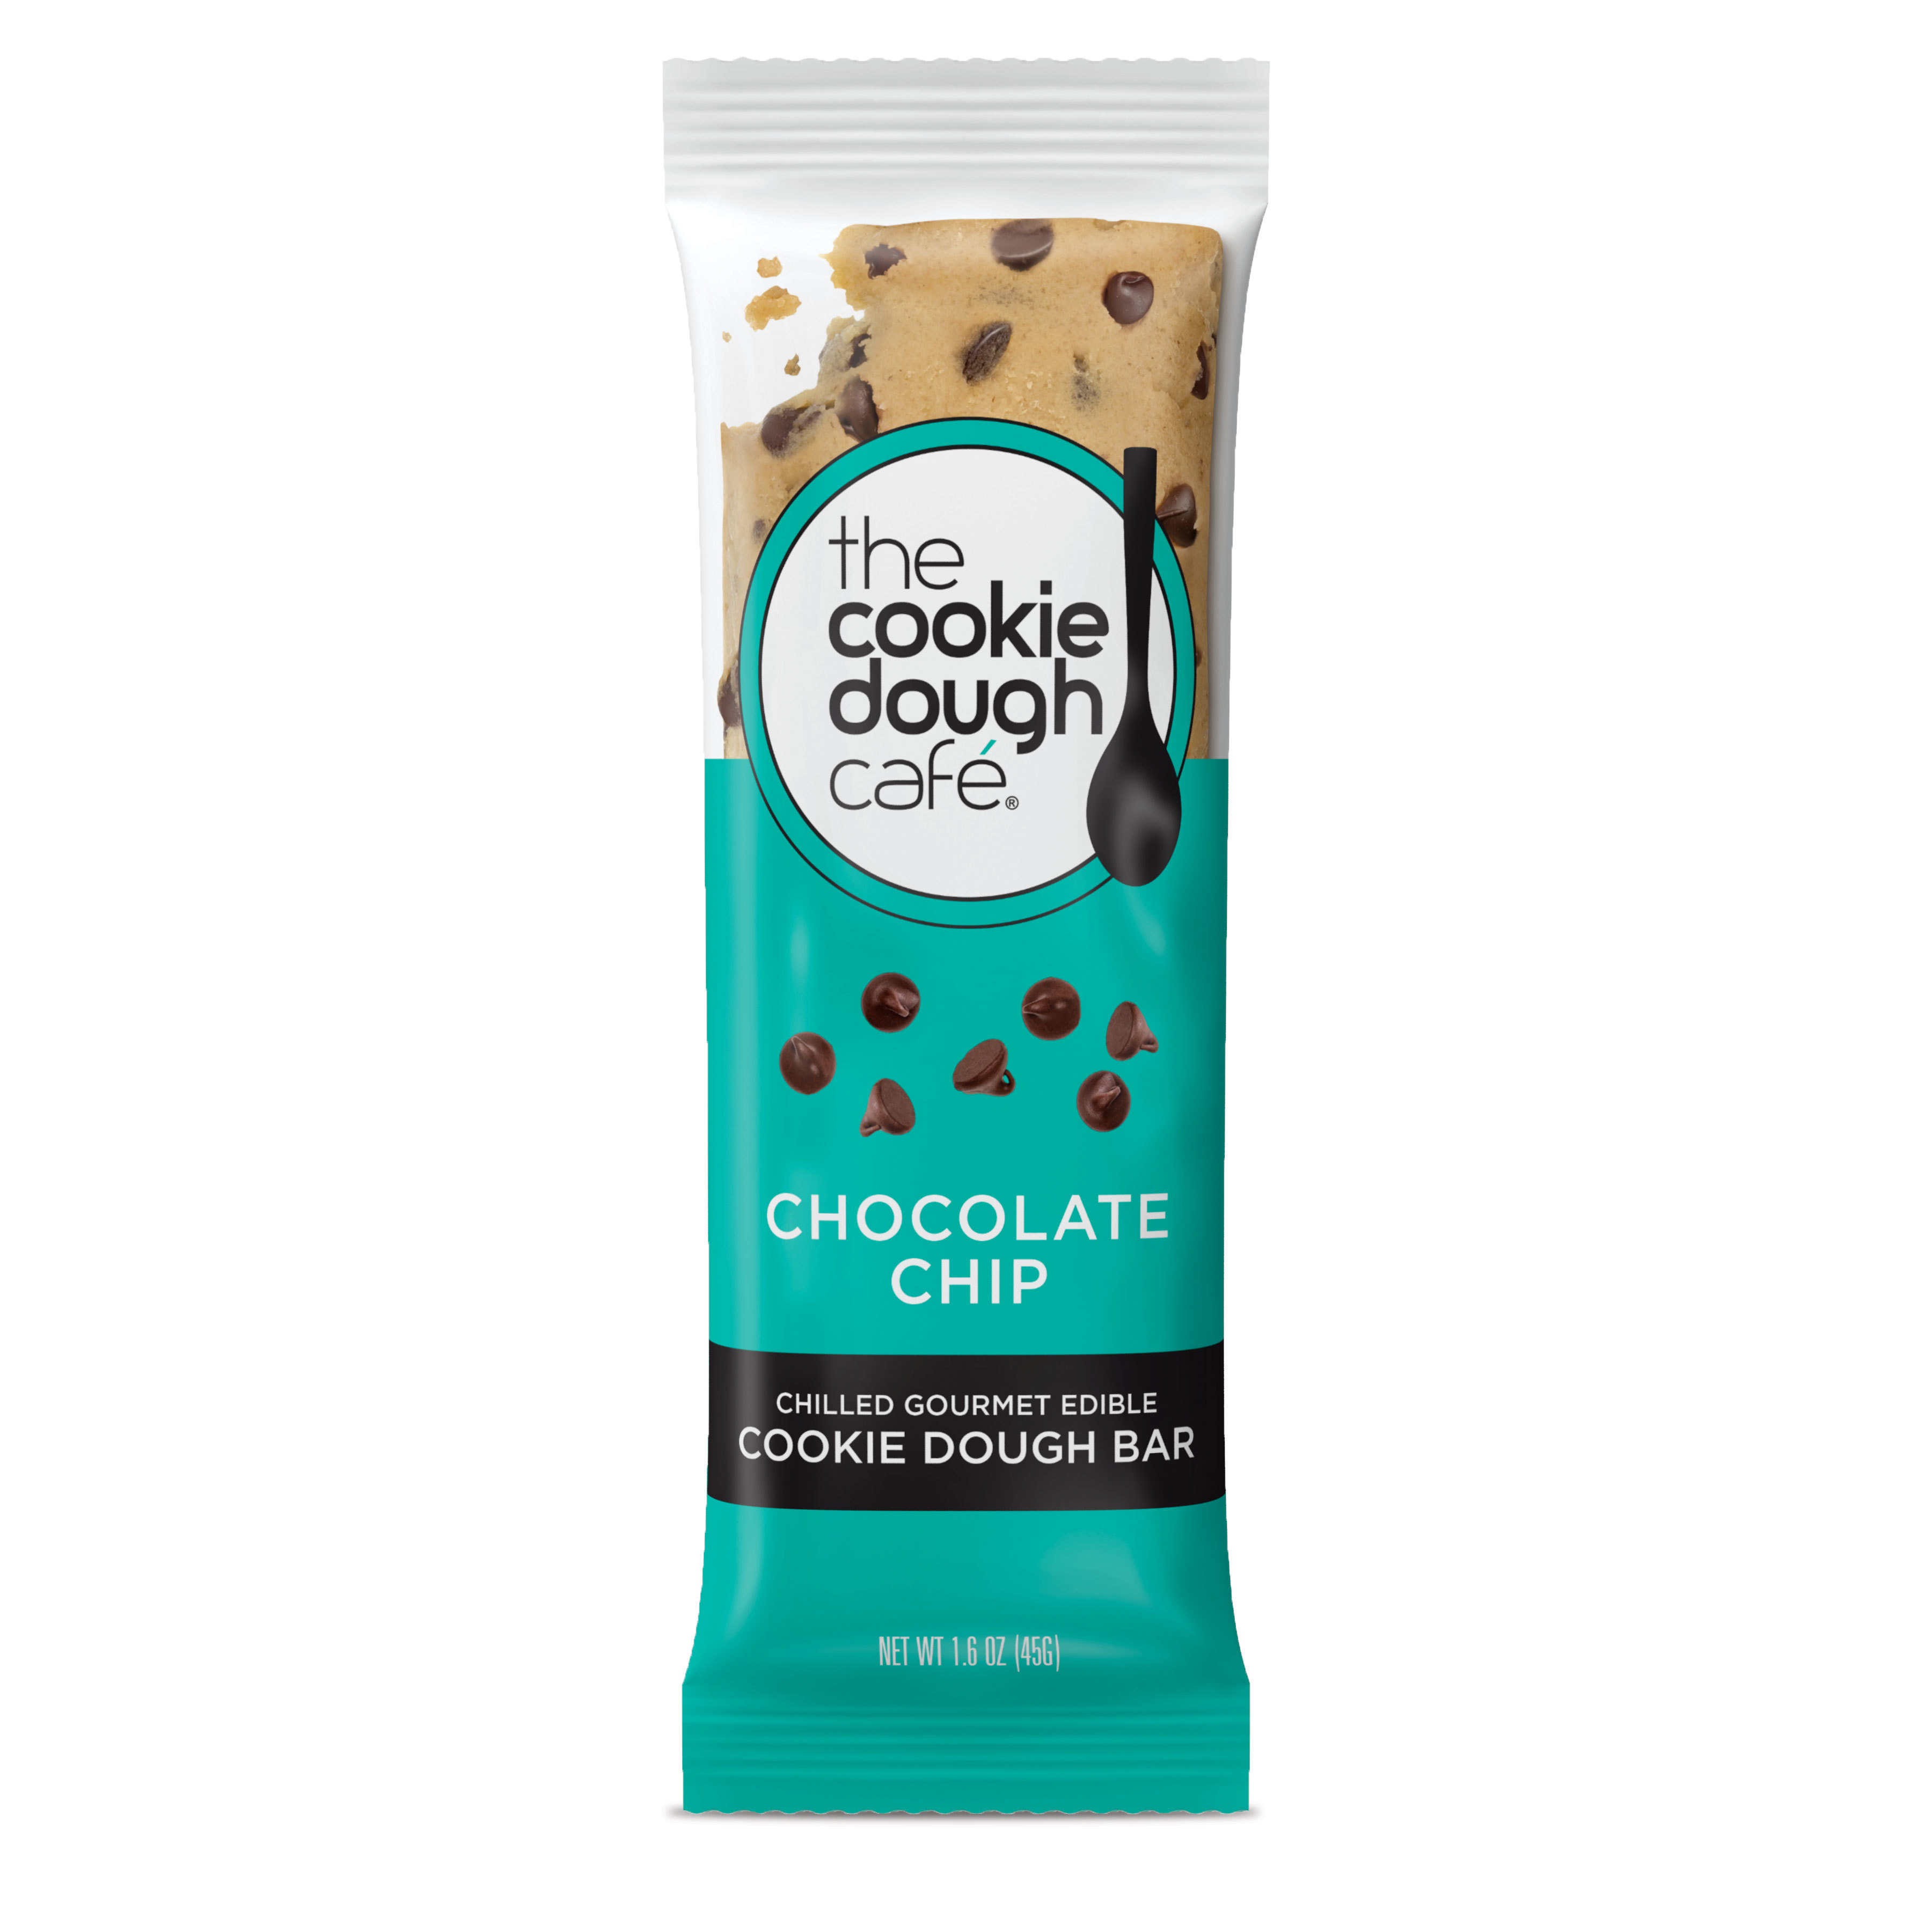 Chocolate Chip Cookie Dough Bars 16 Pack (1.6 oz each) 7010